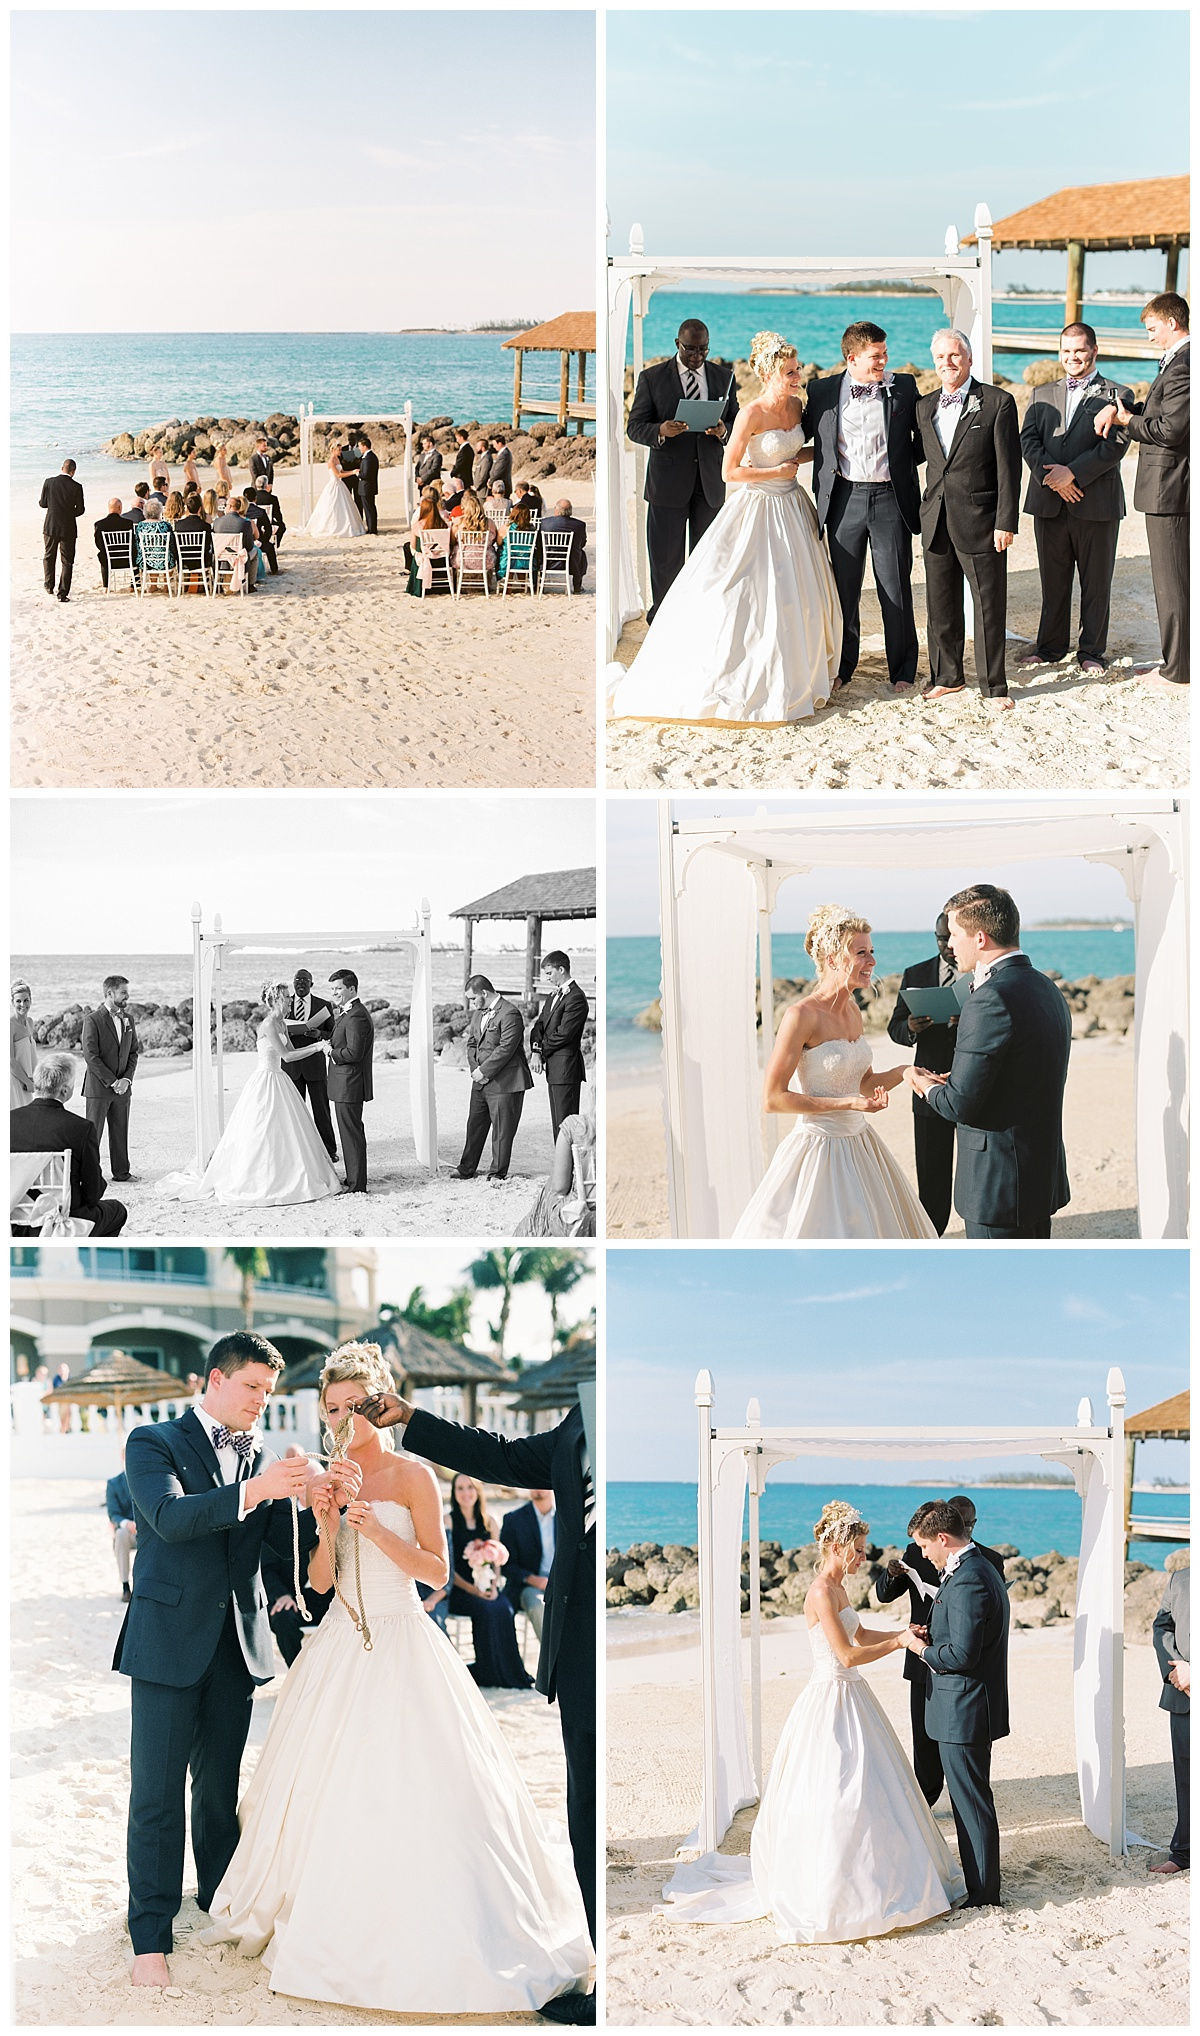 sandals-bahamas-wedding-ar-photography-6.jpg